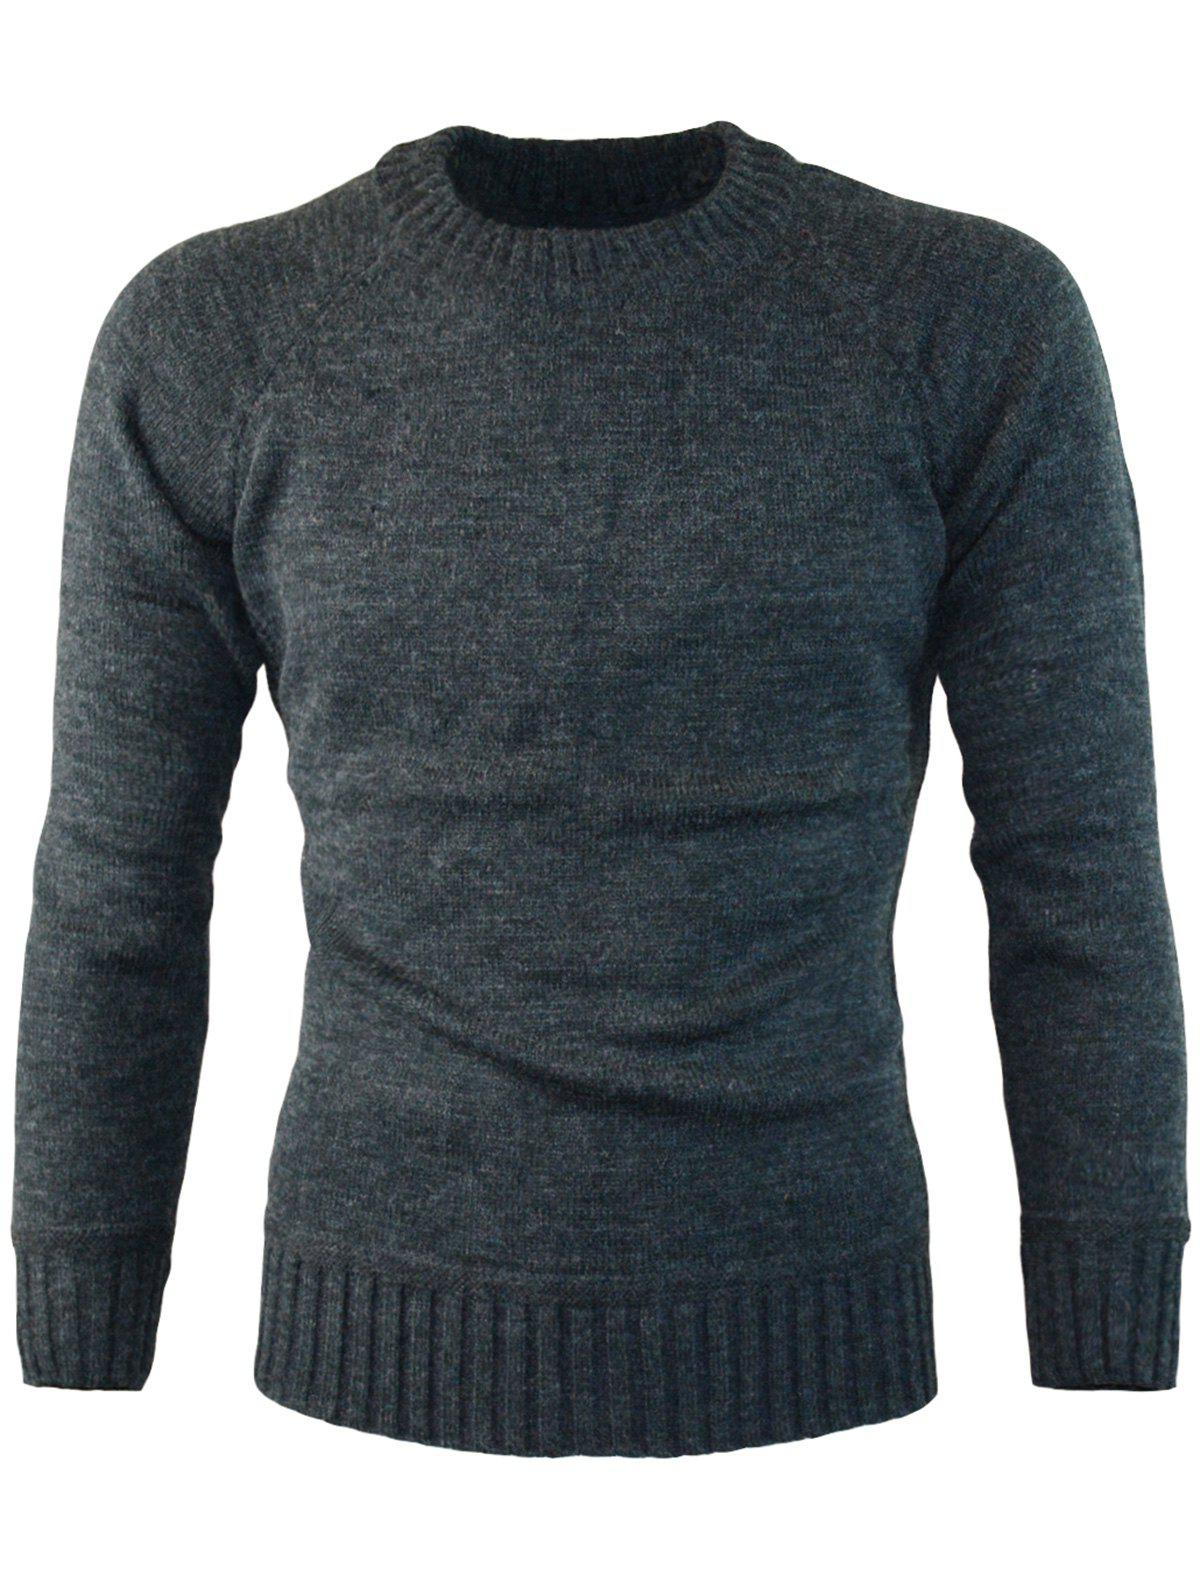 Chic Ribbed Edge Knitted Crew Neck Sweater